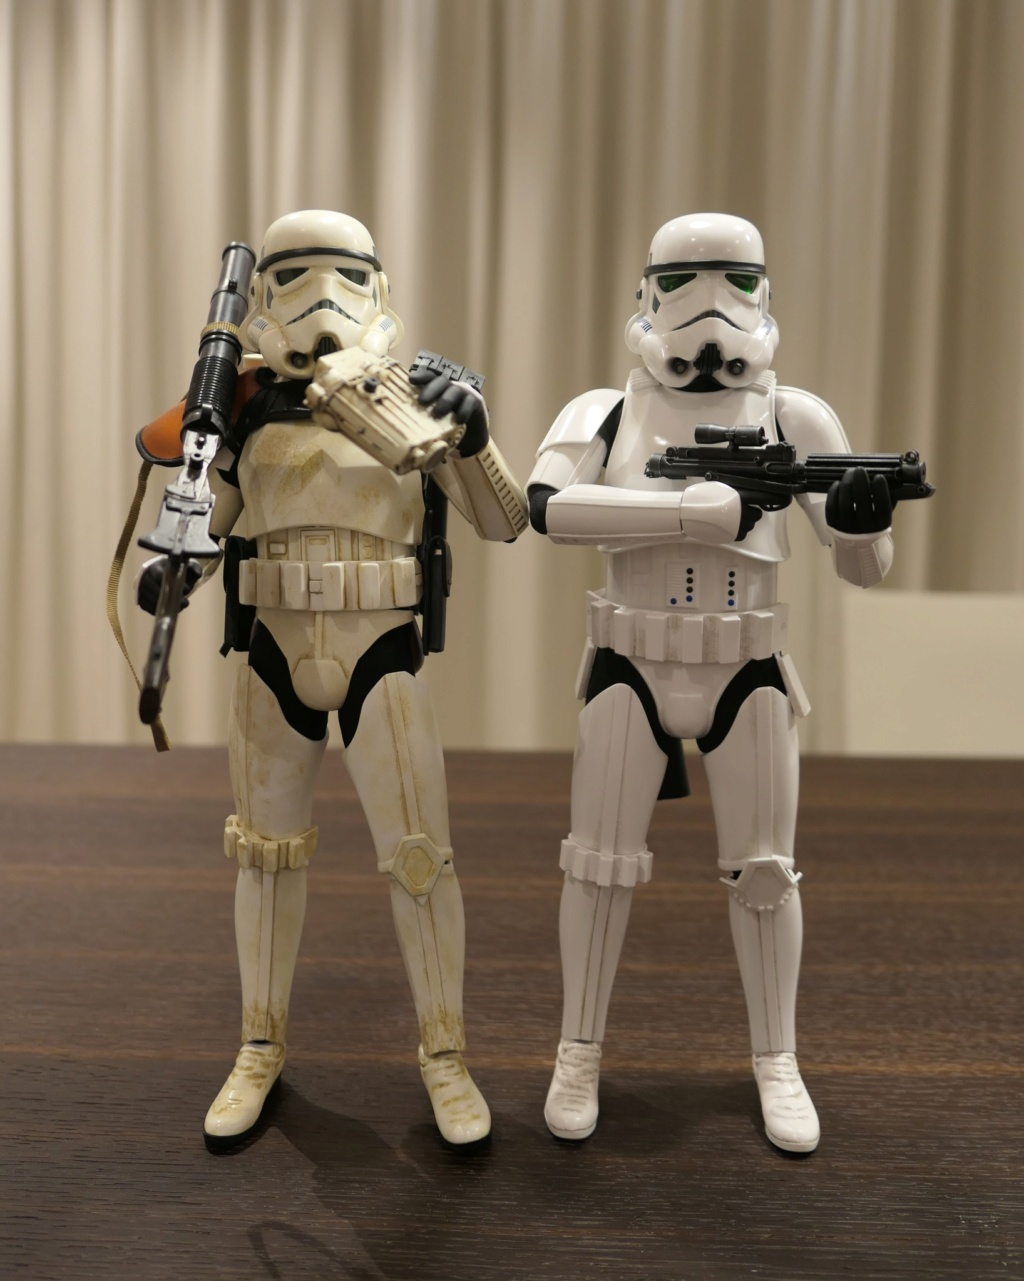 stormtrooper - NEW PRODUCT: HOT TOYS: STAR WARS STORMTROOPER (DELUXE VERSION) 1/6TH SCALE COLLECTIBLE FIGURE 2ikqmh10